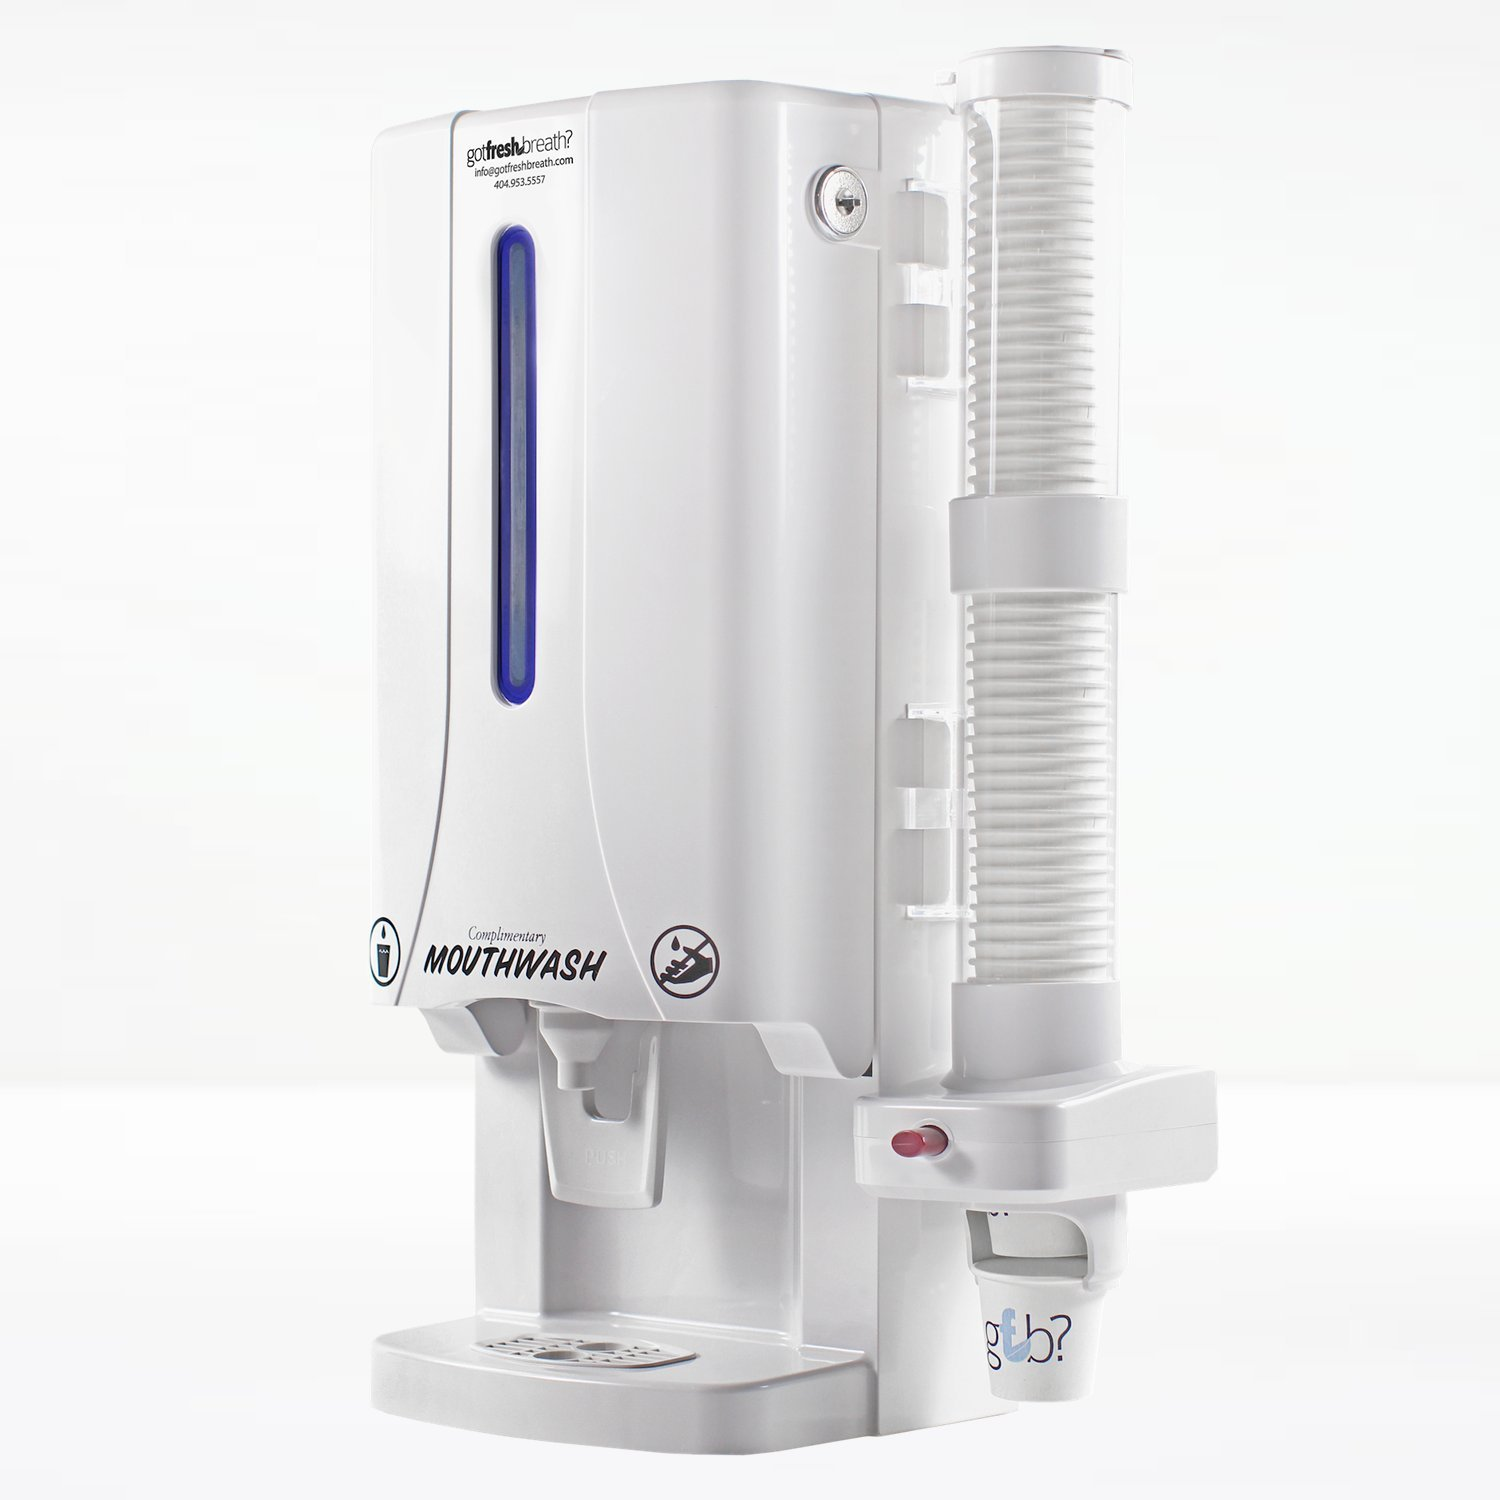 Mouthwash Dispenser Mini (White) - For GotFreshBreath Alcohol-free Mouthwash